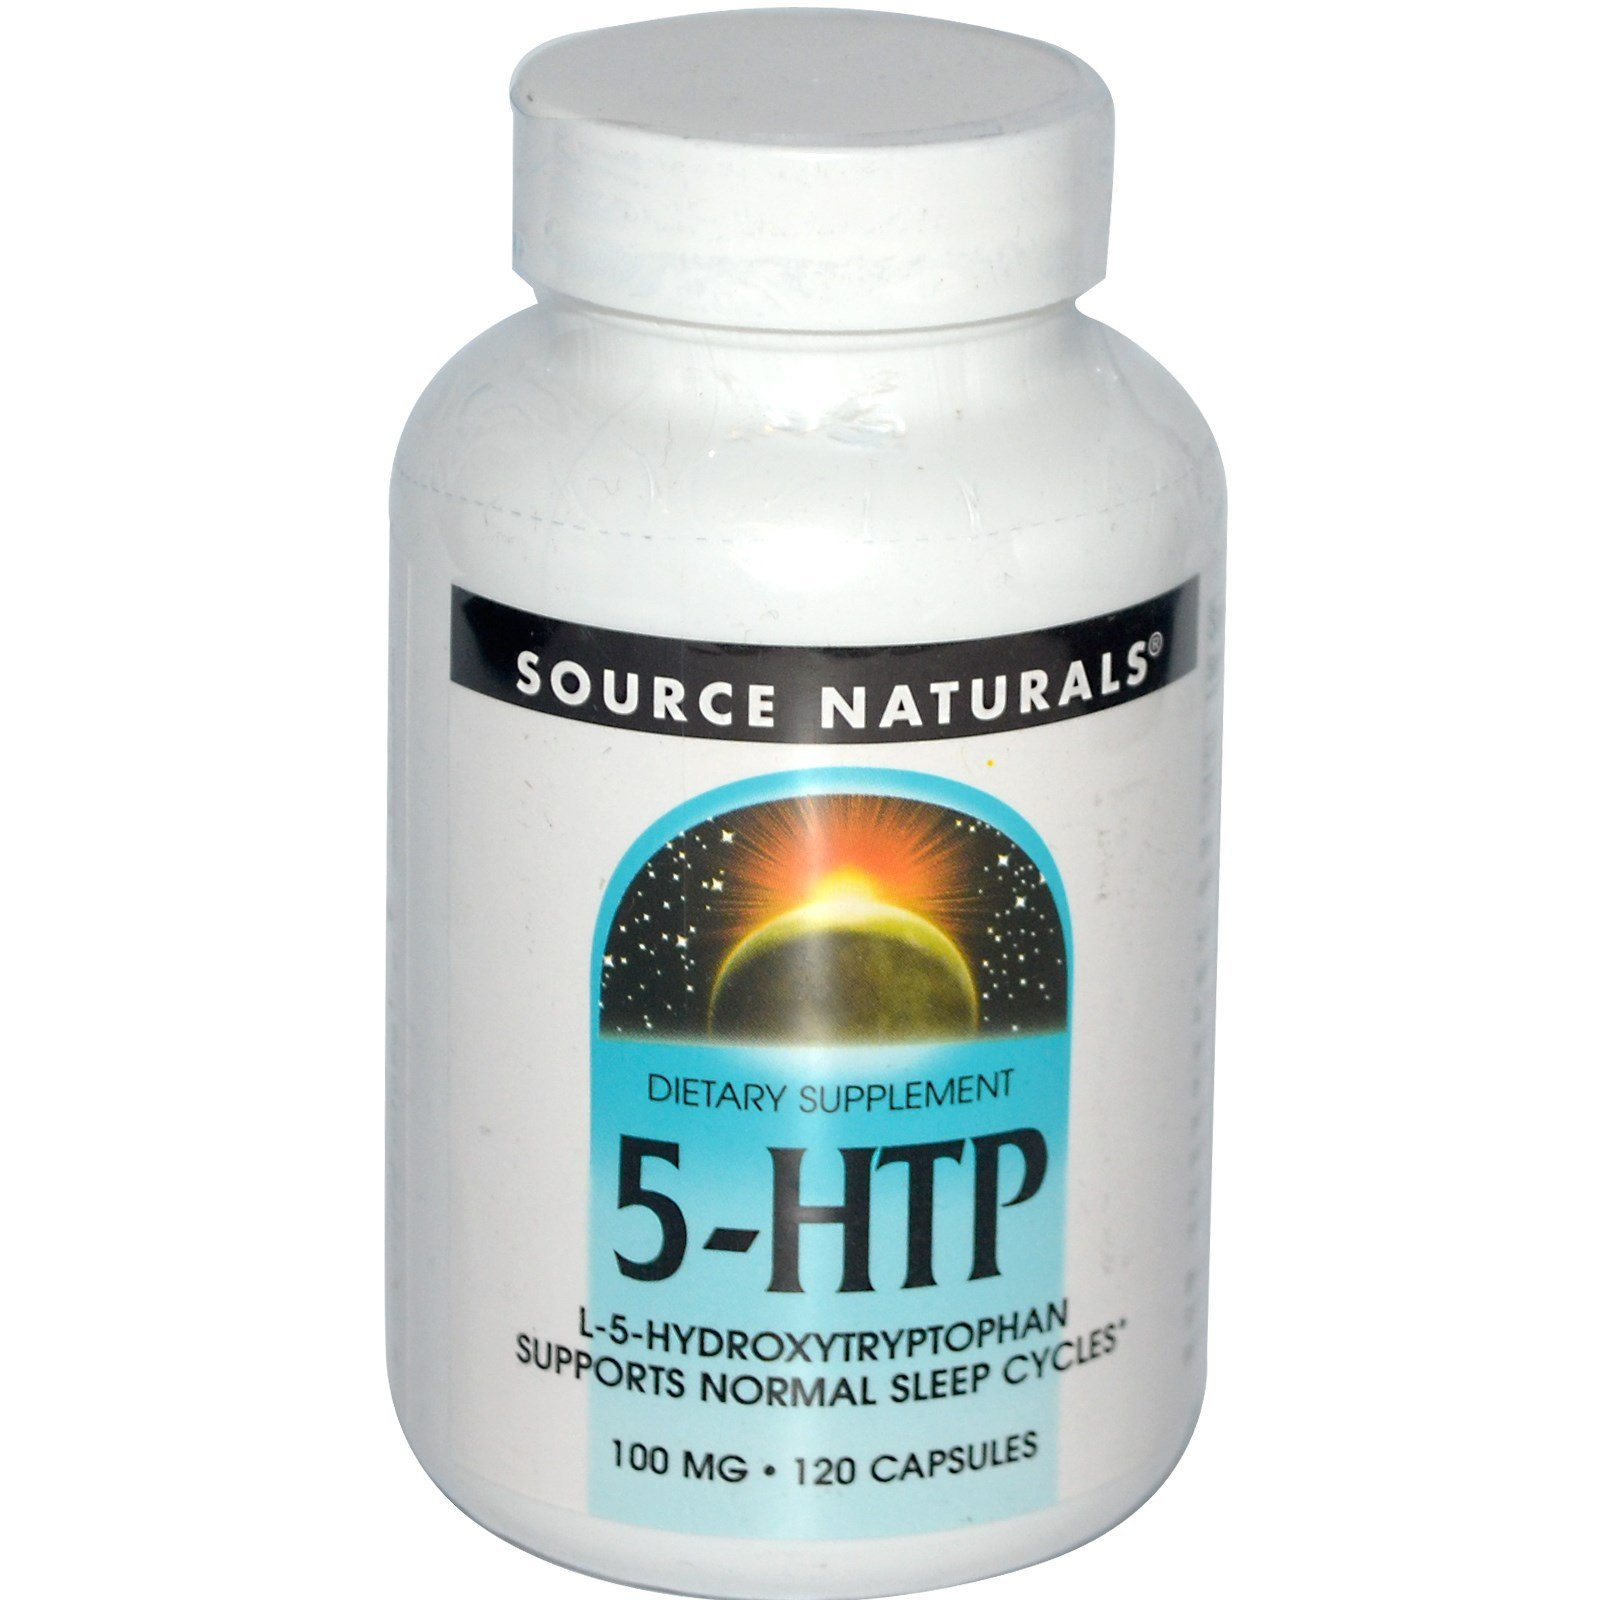 Source Naturals, 5-HTP, 100 mg, 120 Capsules - 3PC